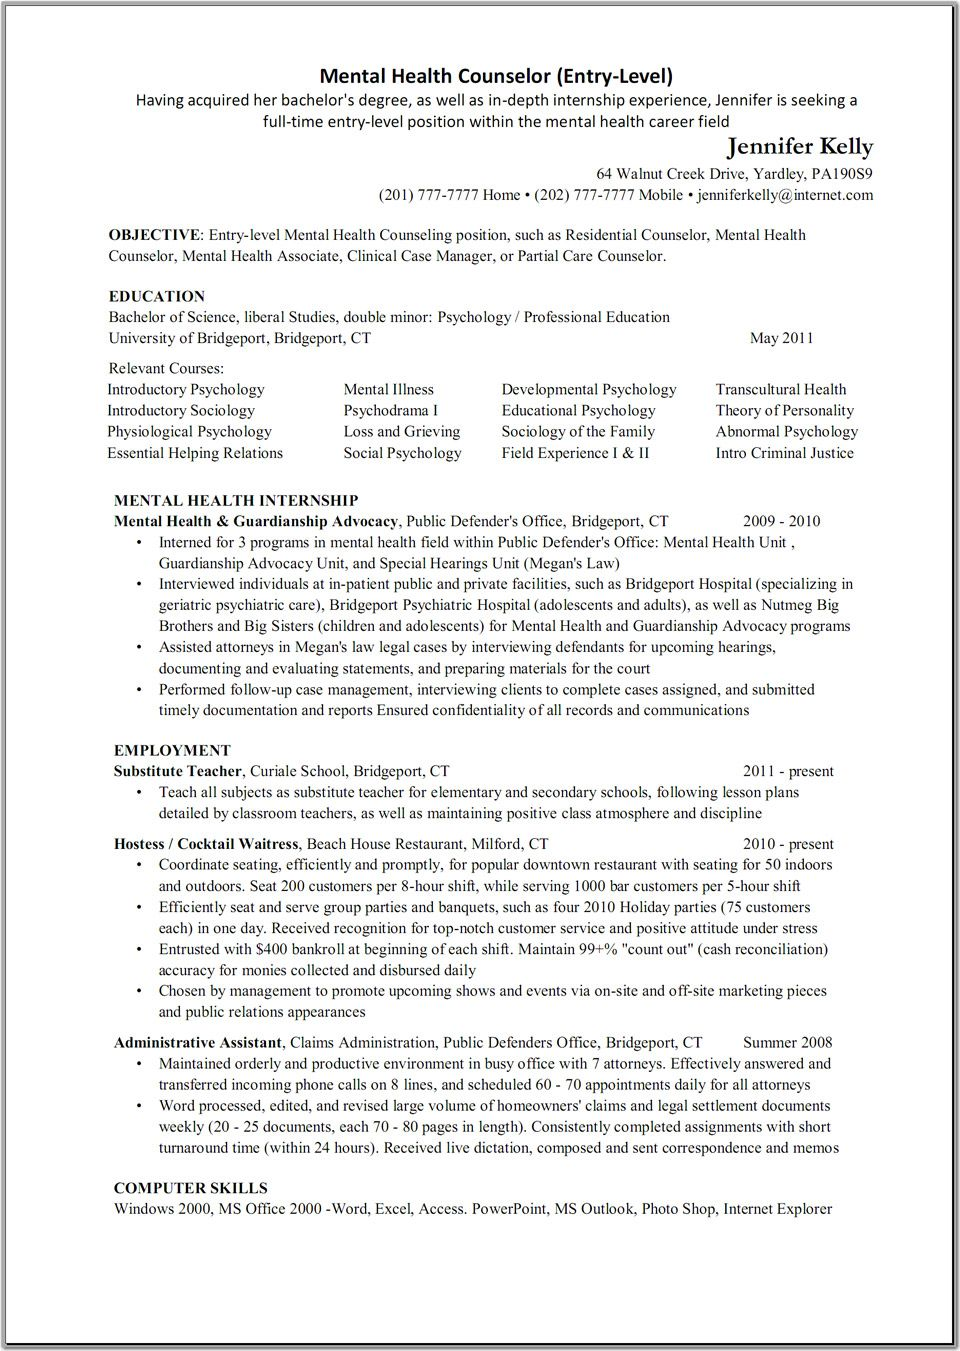 Best Objective For Resume Magnificent Mental Health Counselor Resume Objective  Resume Template